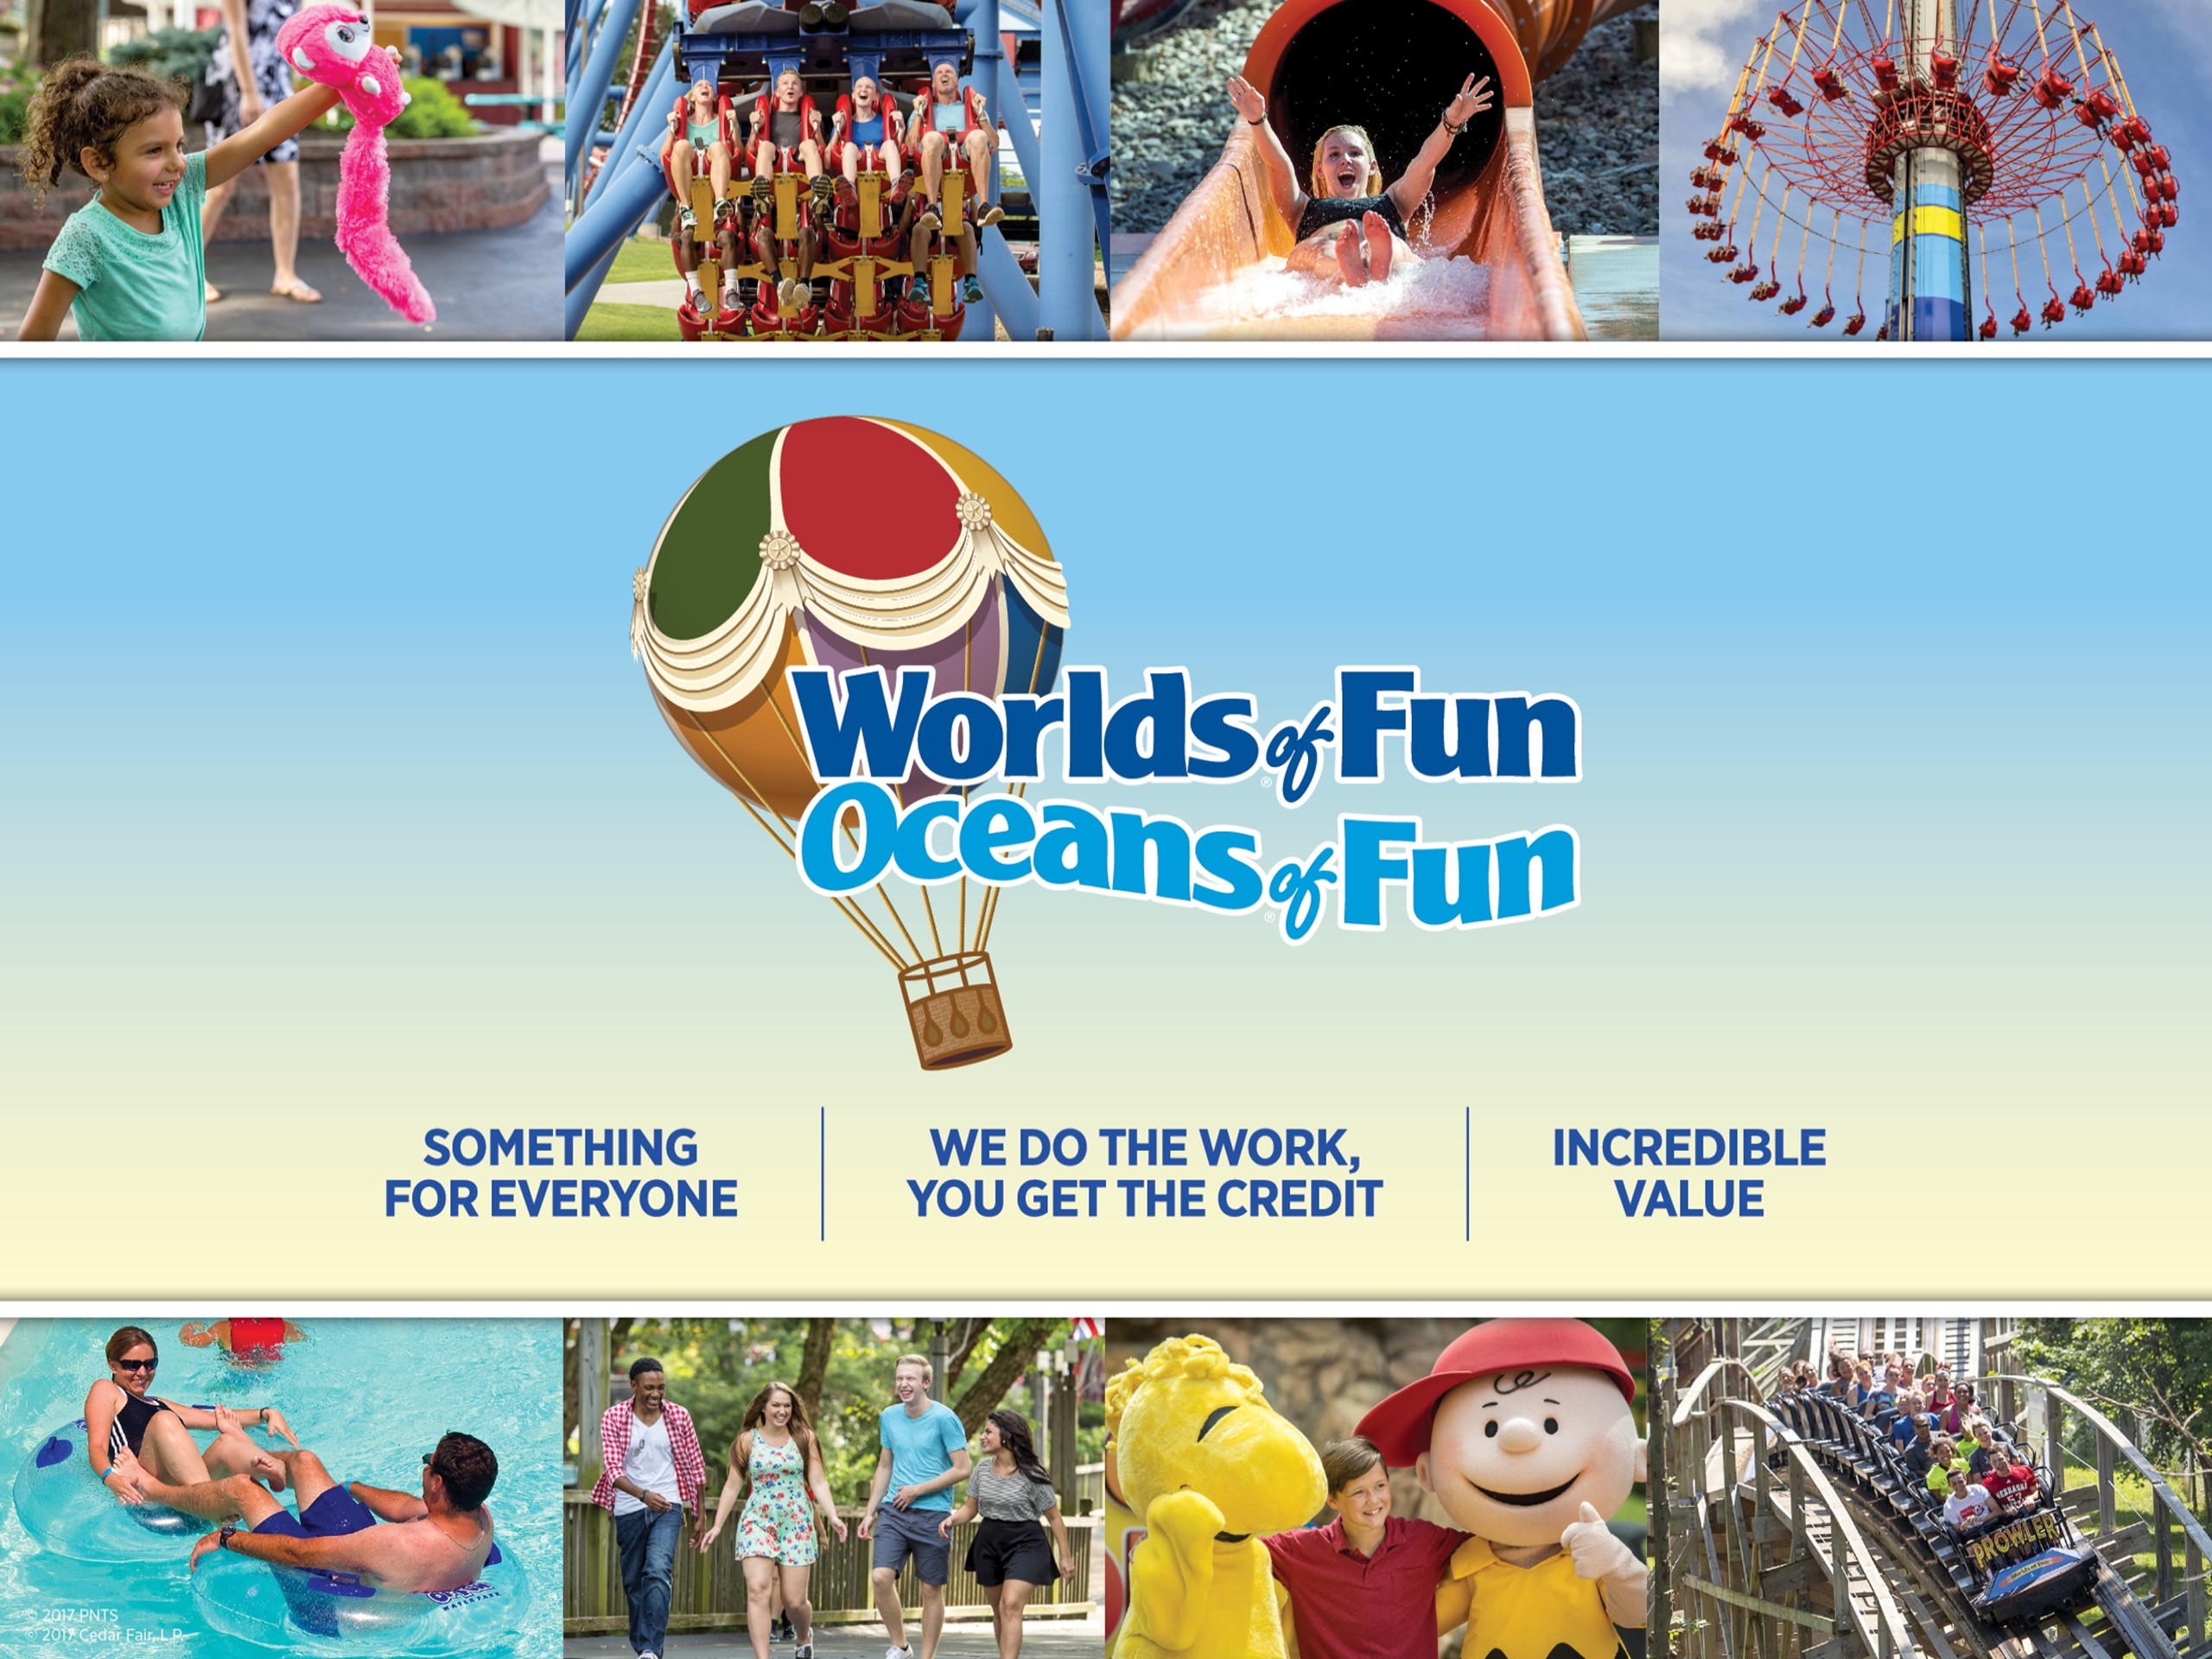 Worlds of Fun Oceans of Fun logo with several pictures of kids playing at the parks